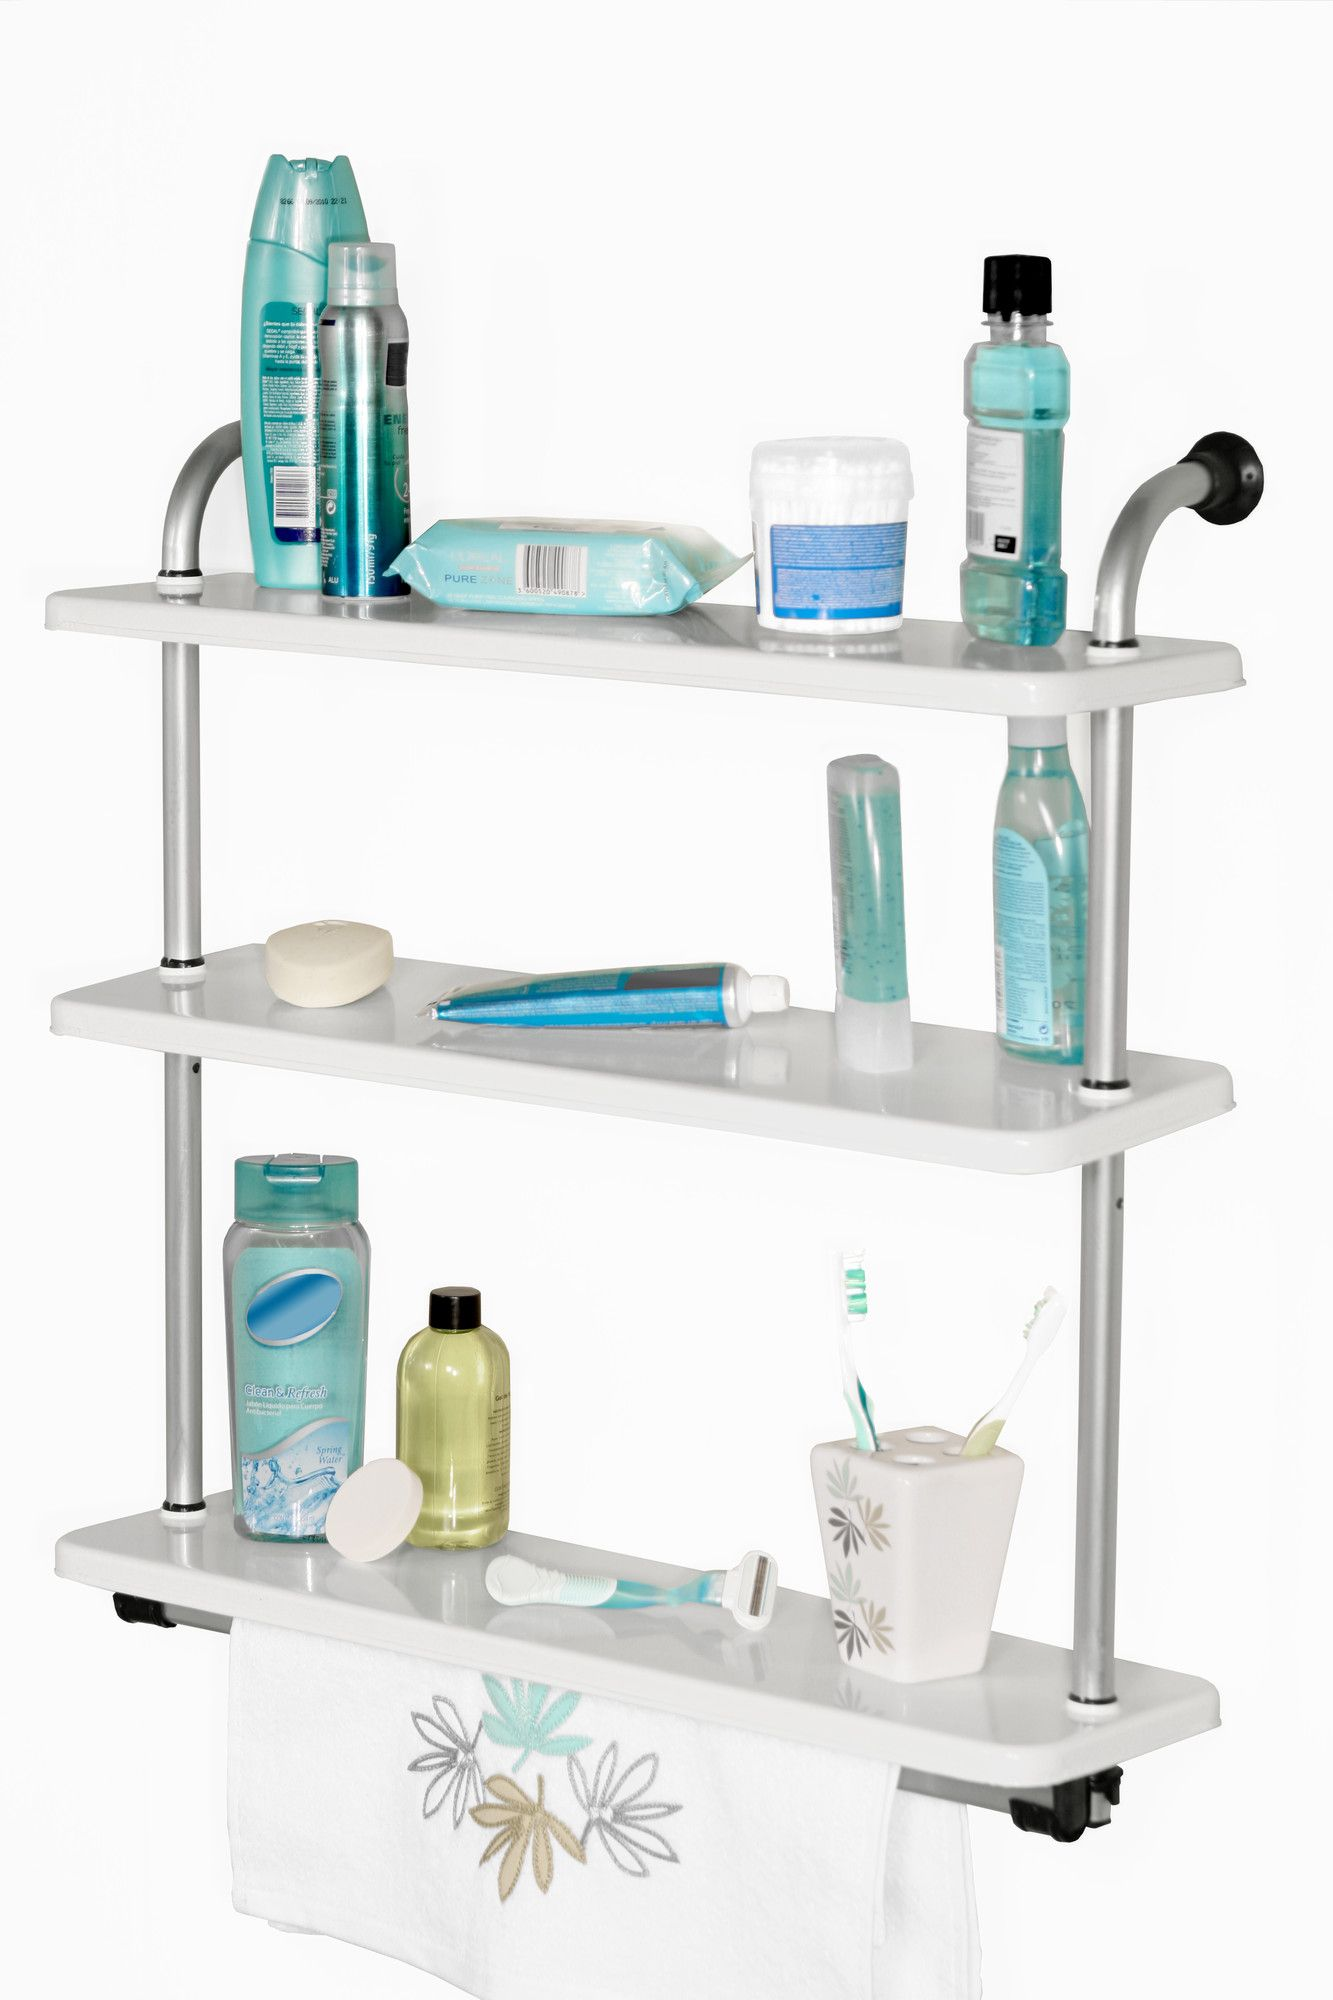 3-Tier Wall Shelf   Products   Pinterest   Products